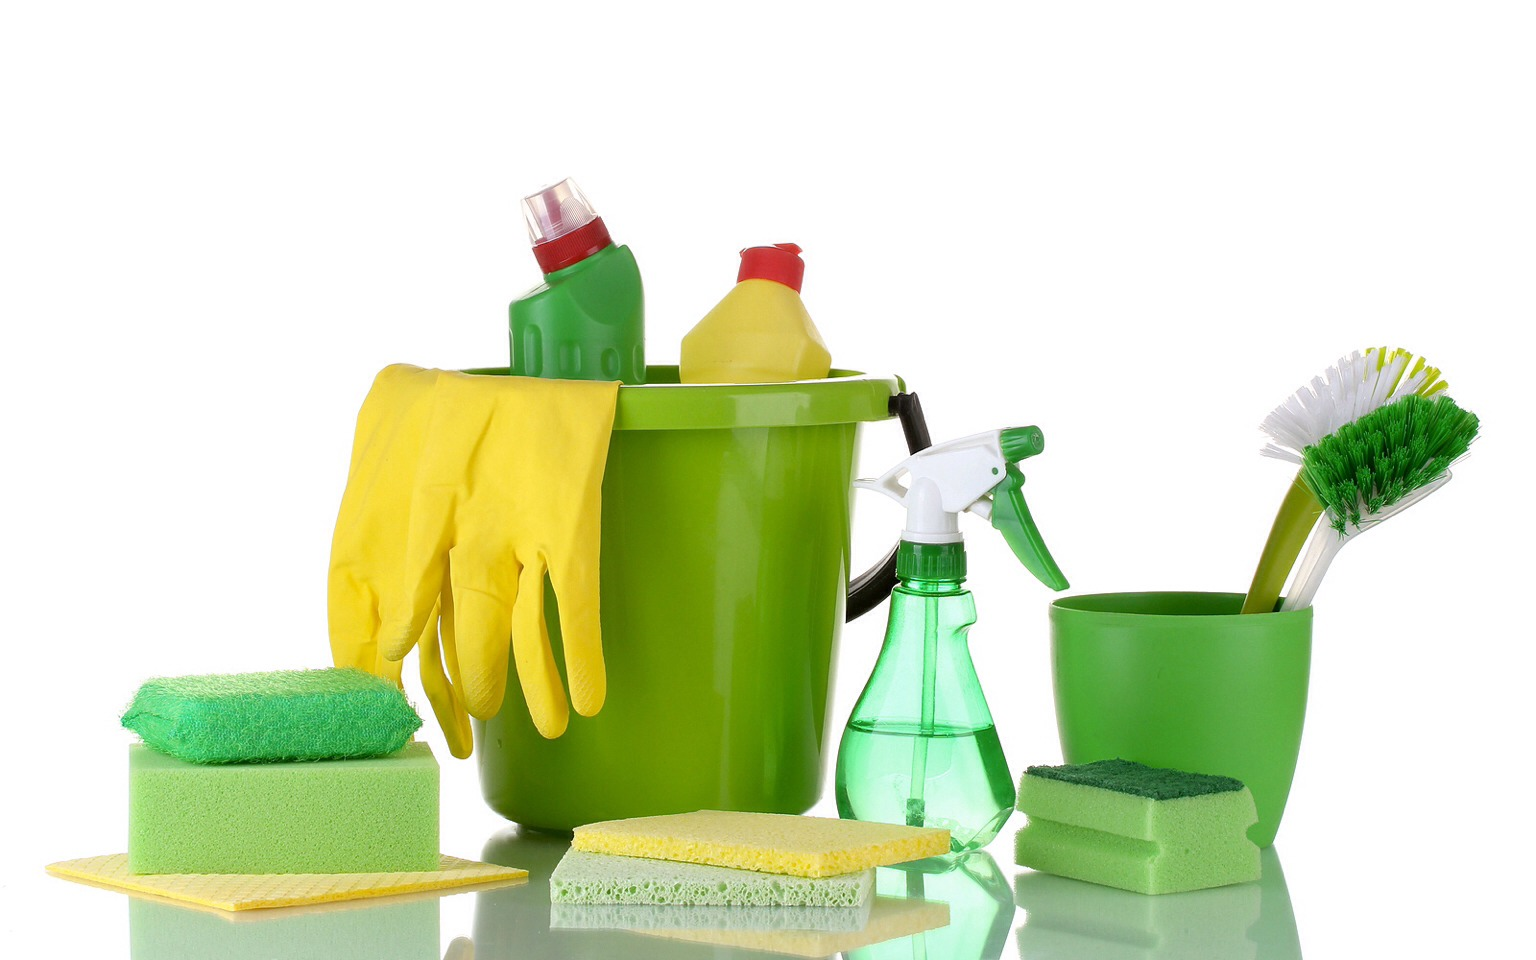 Use green or natural cleaning products to illiminate any extra chemicals produced in the air. You would be suprised how much overtime that chemical builds up in our environment as well its damaging to our respiratory system if not properly ventilated over time.